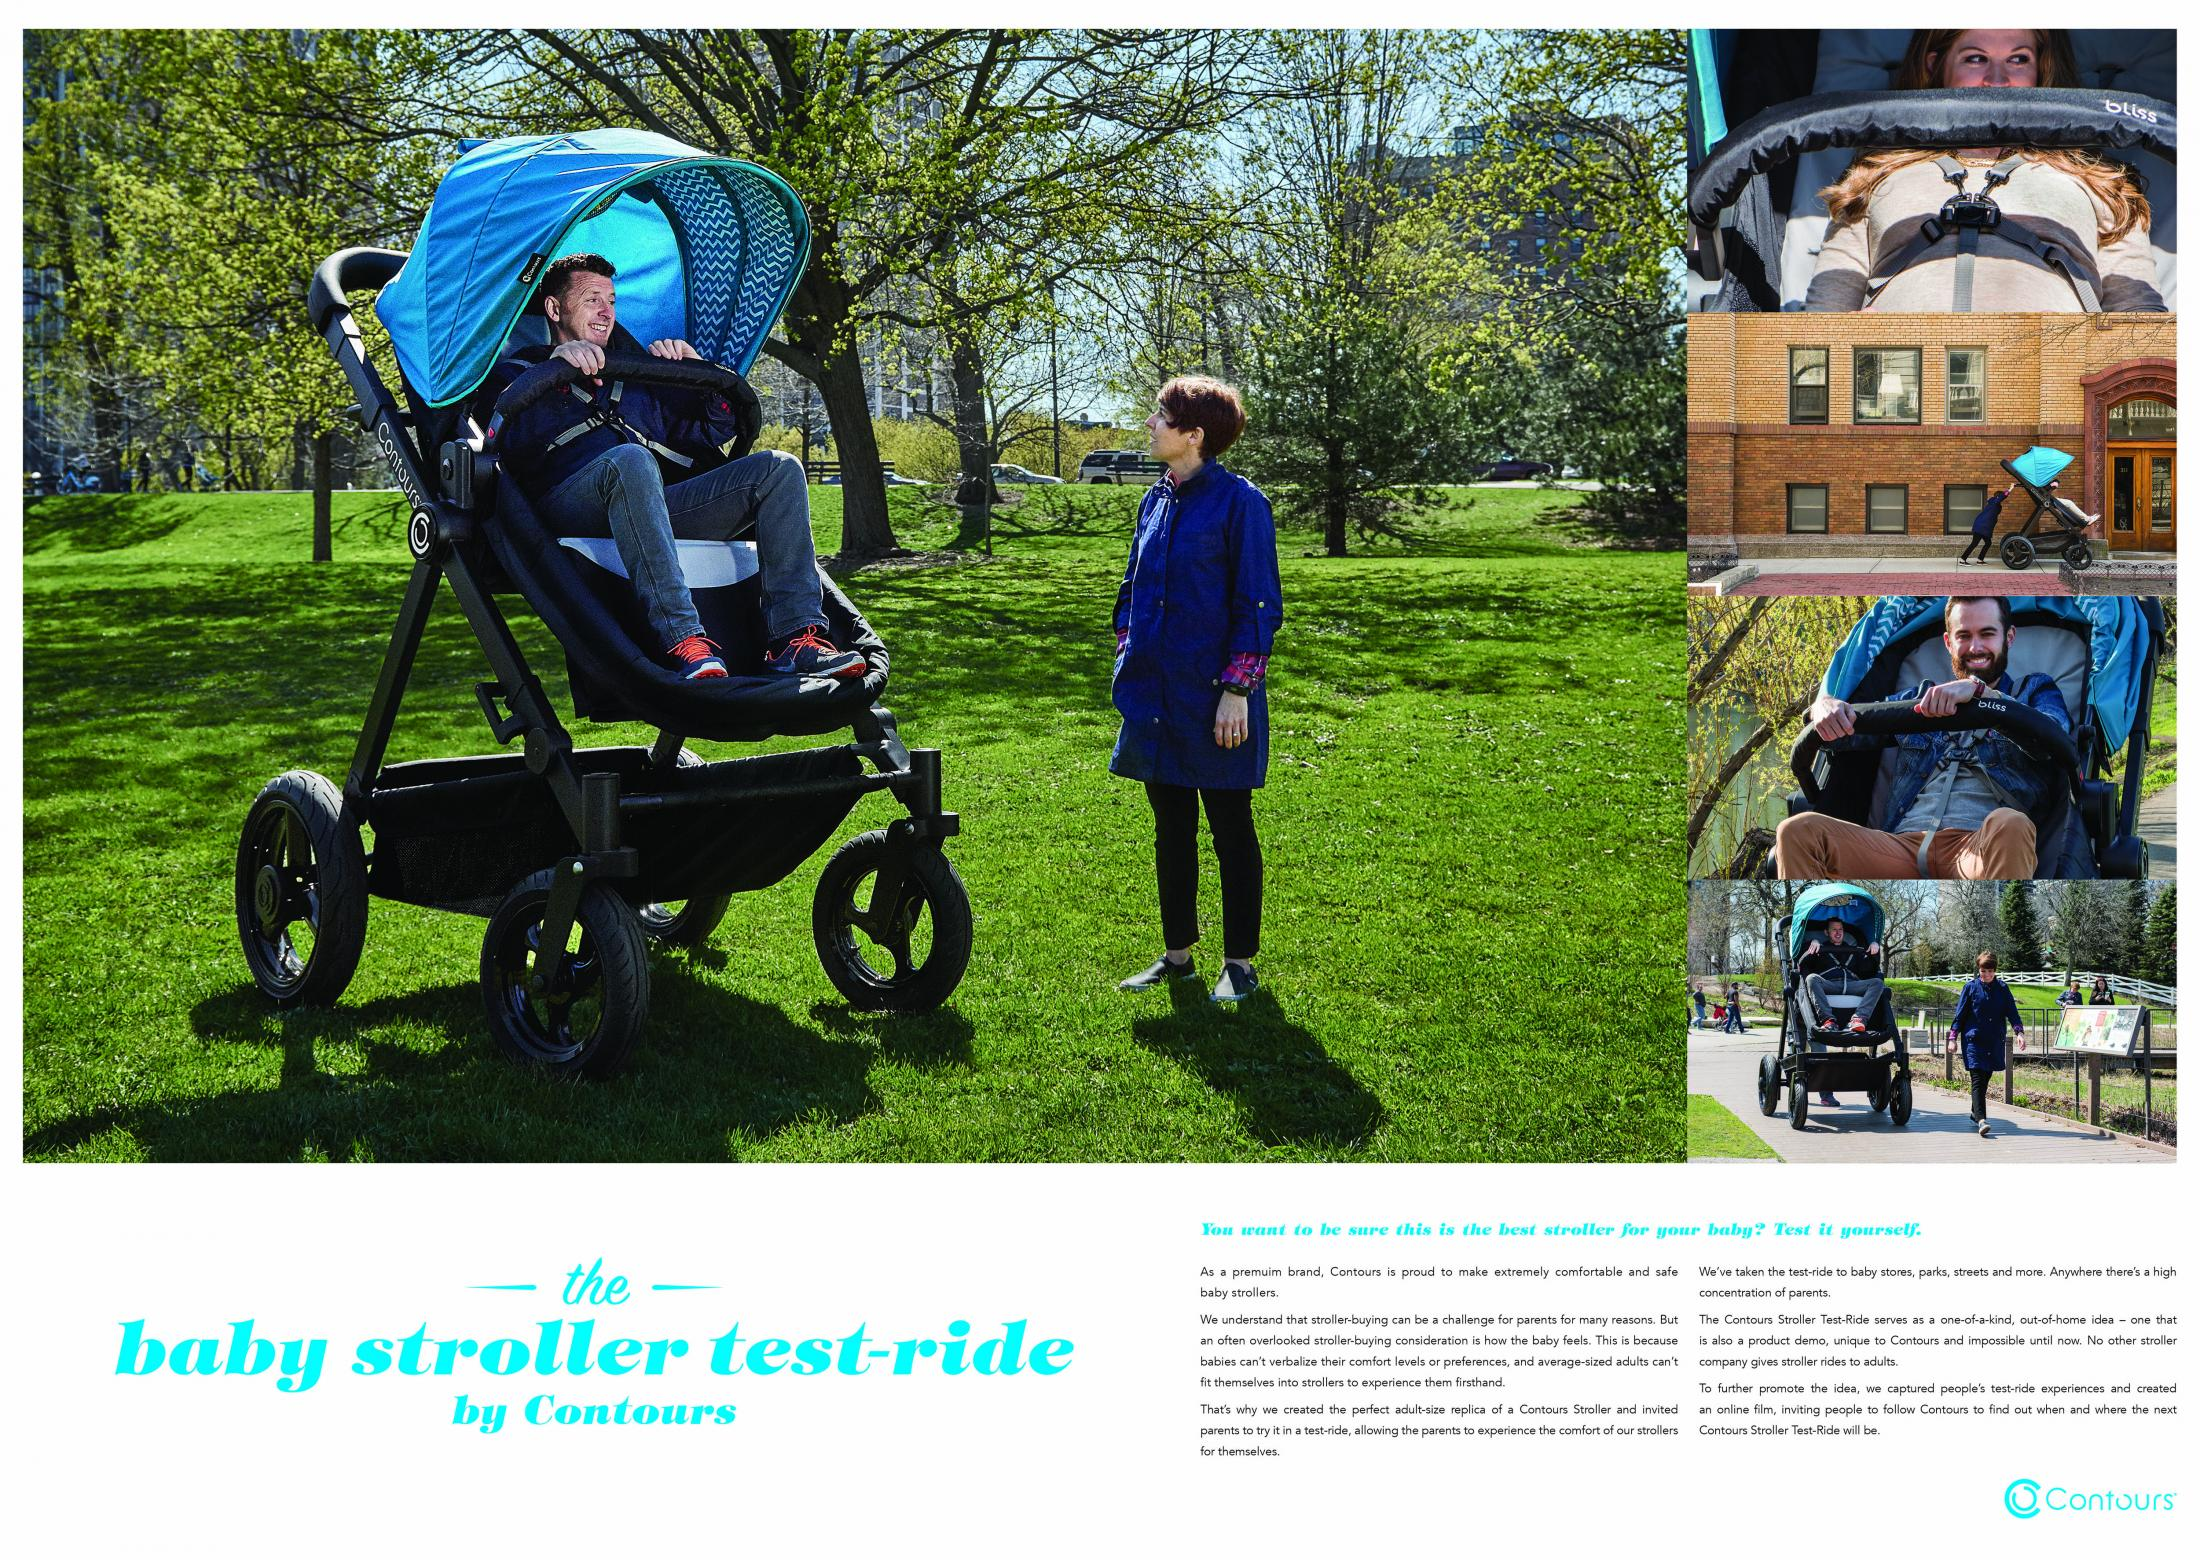 Thumbnail for The Baby Stroller Test-Ride by Contours Strollers